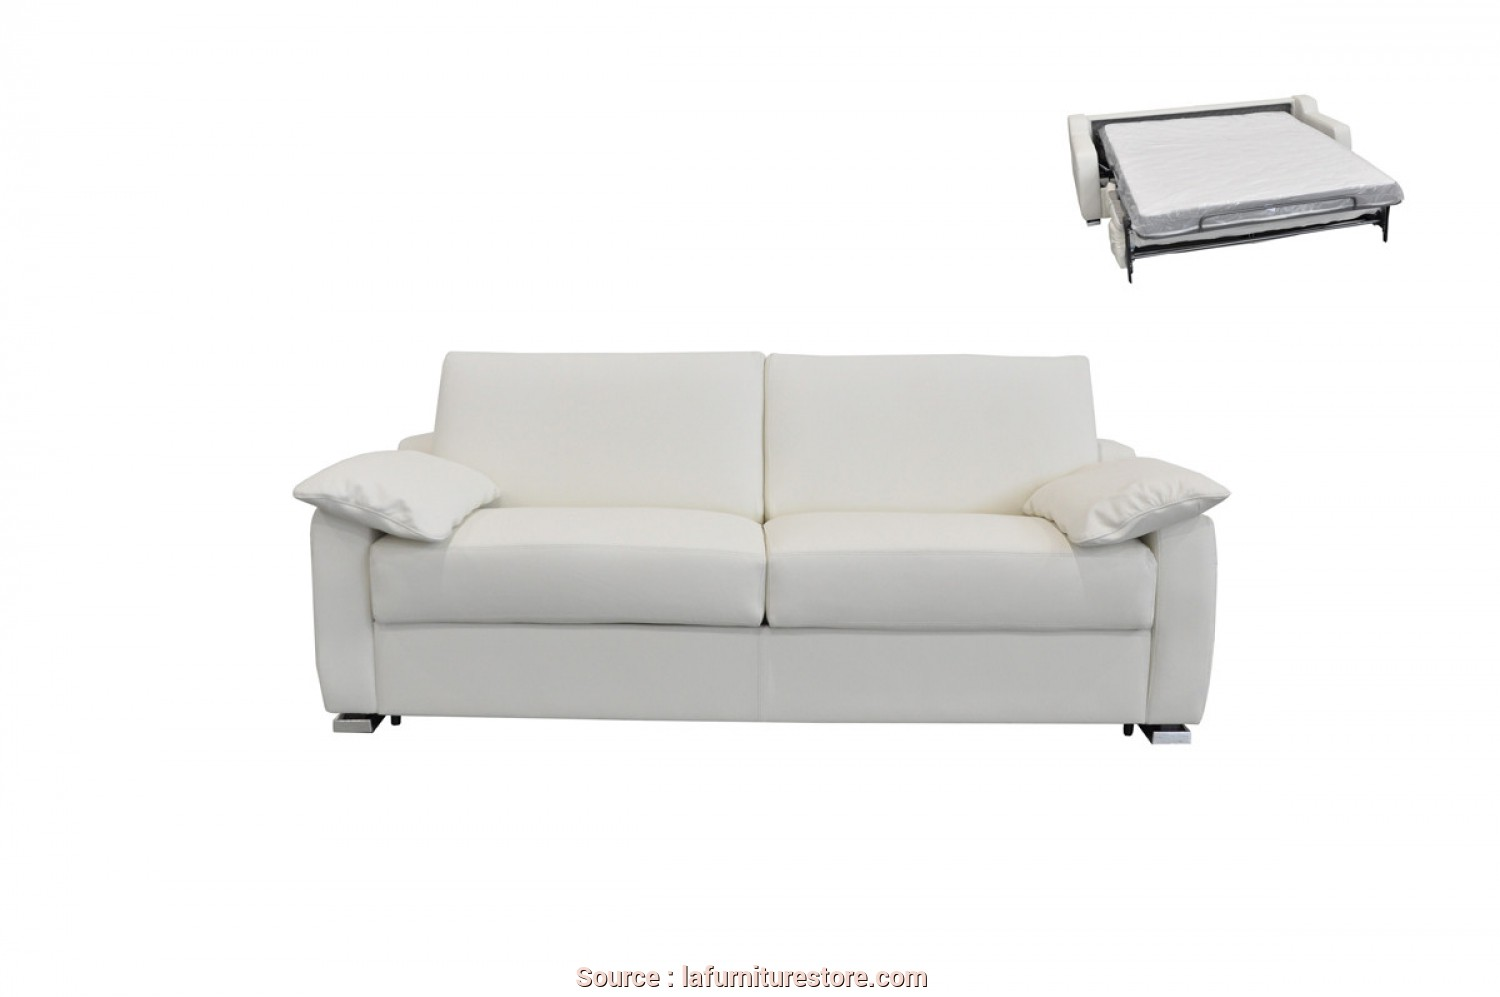 Sb Salotti Pavese, Semplice Estro Salotti Dalia Italian Modern White Leather Sofa Bed